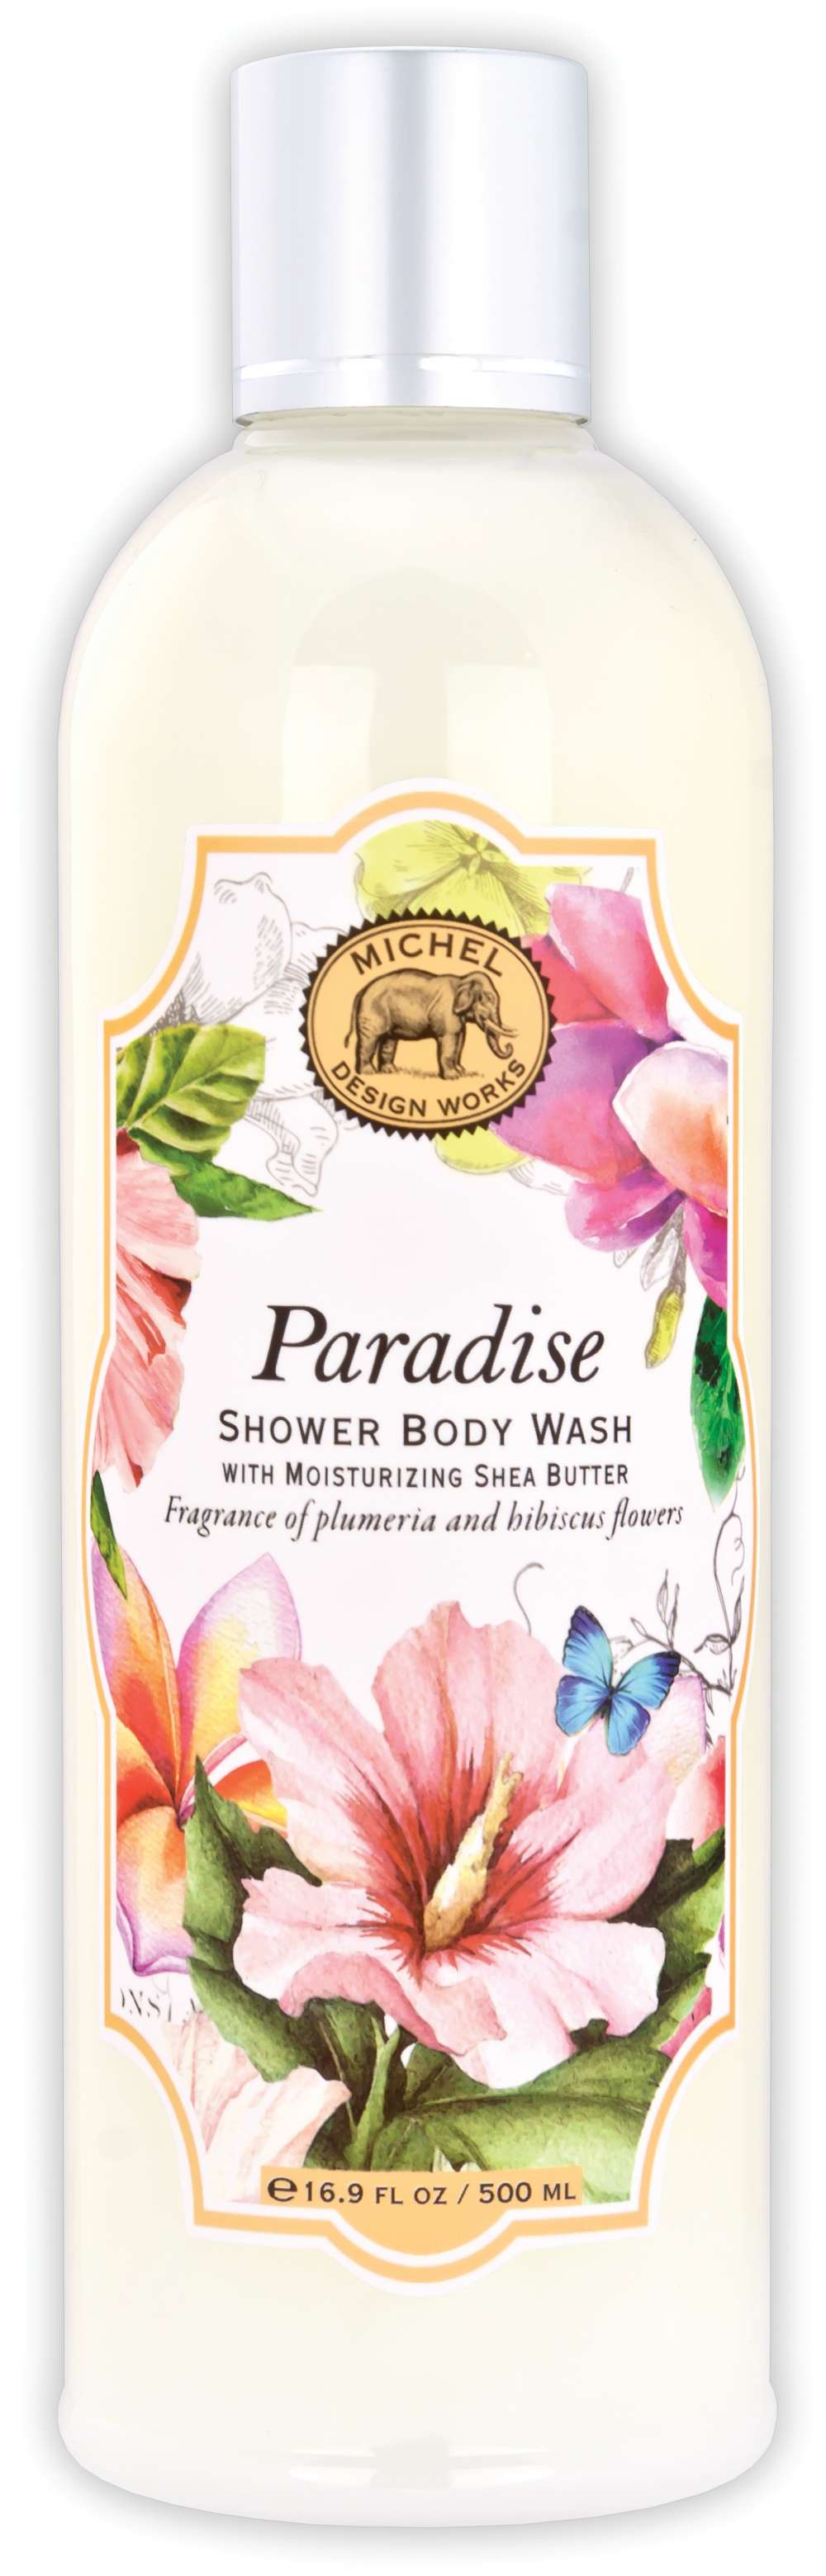 Paradise shower body wash